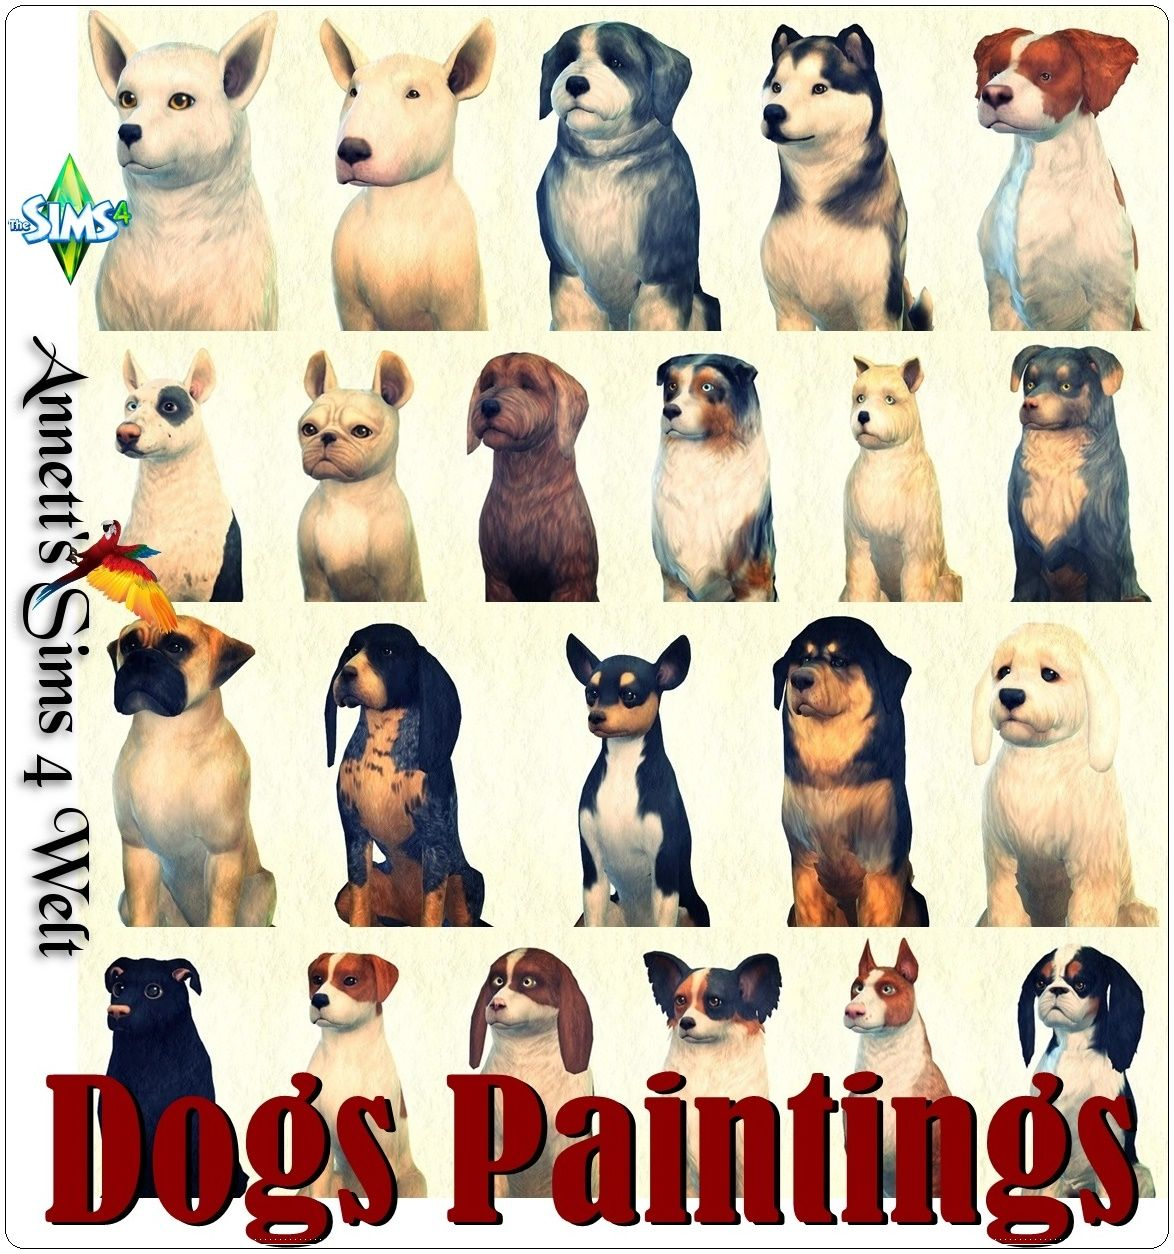 Dogs Paintings Sims 4 Pets Sims 4 Sims